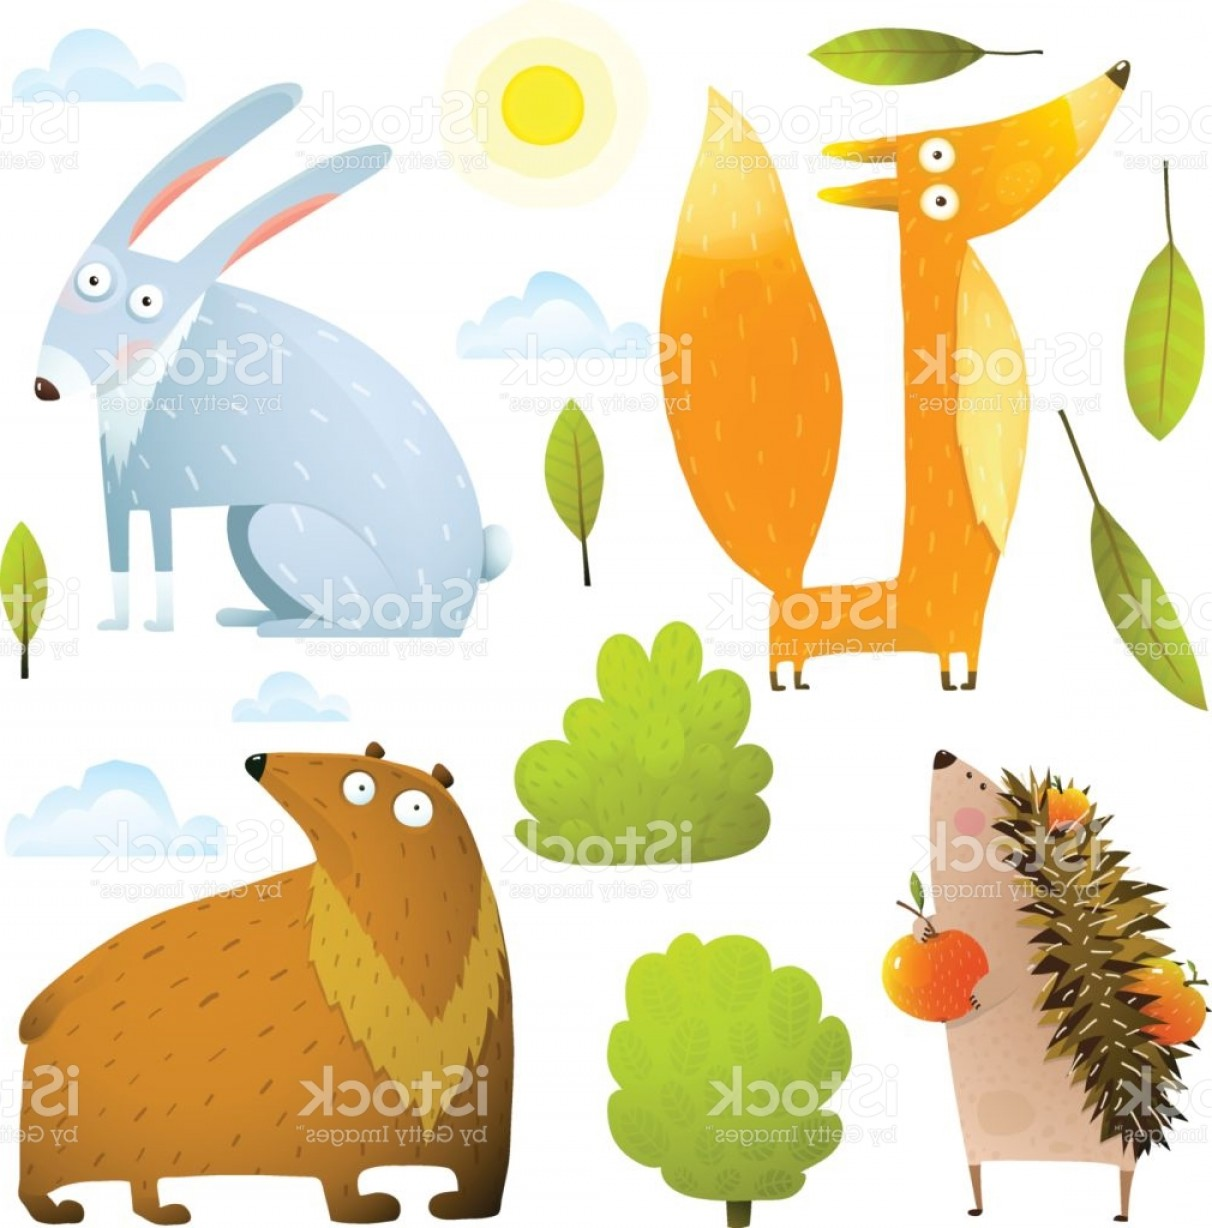 Vector Clip Art Collections: Wild Baby Animals Clip Art Collection Fox Rabbit Bear Hedgehog Gm